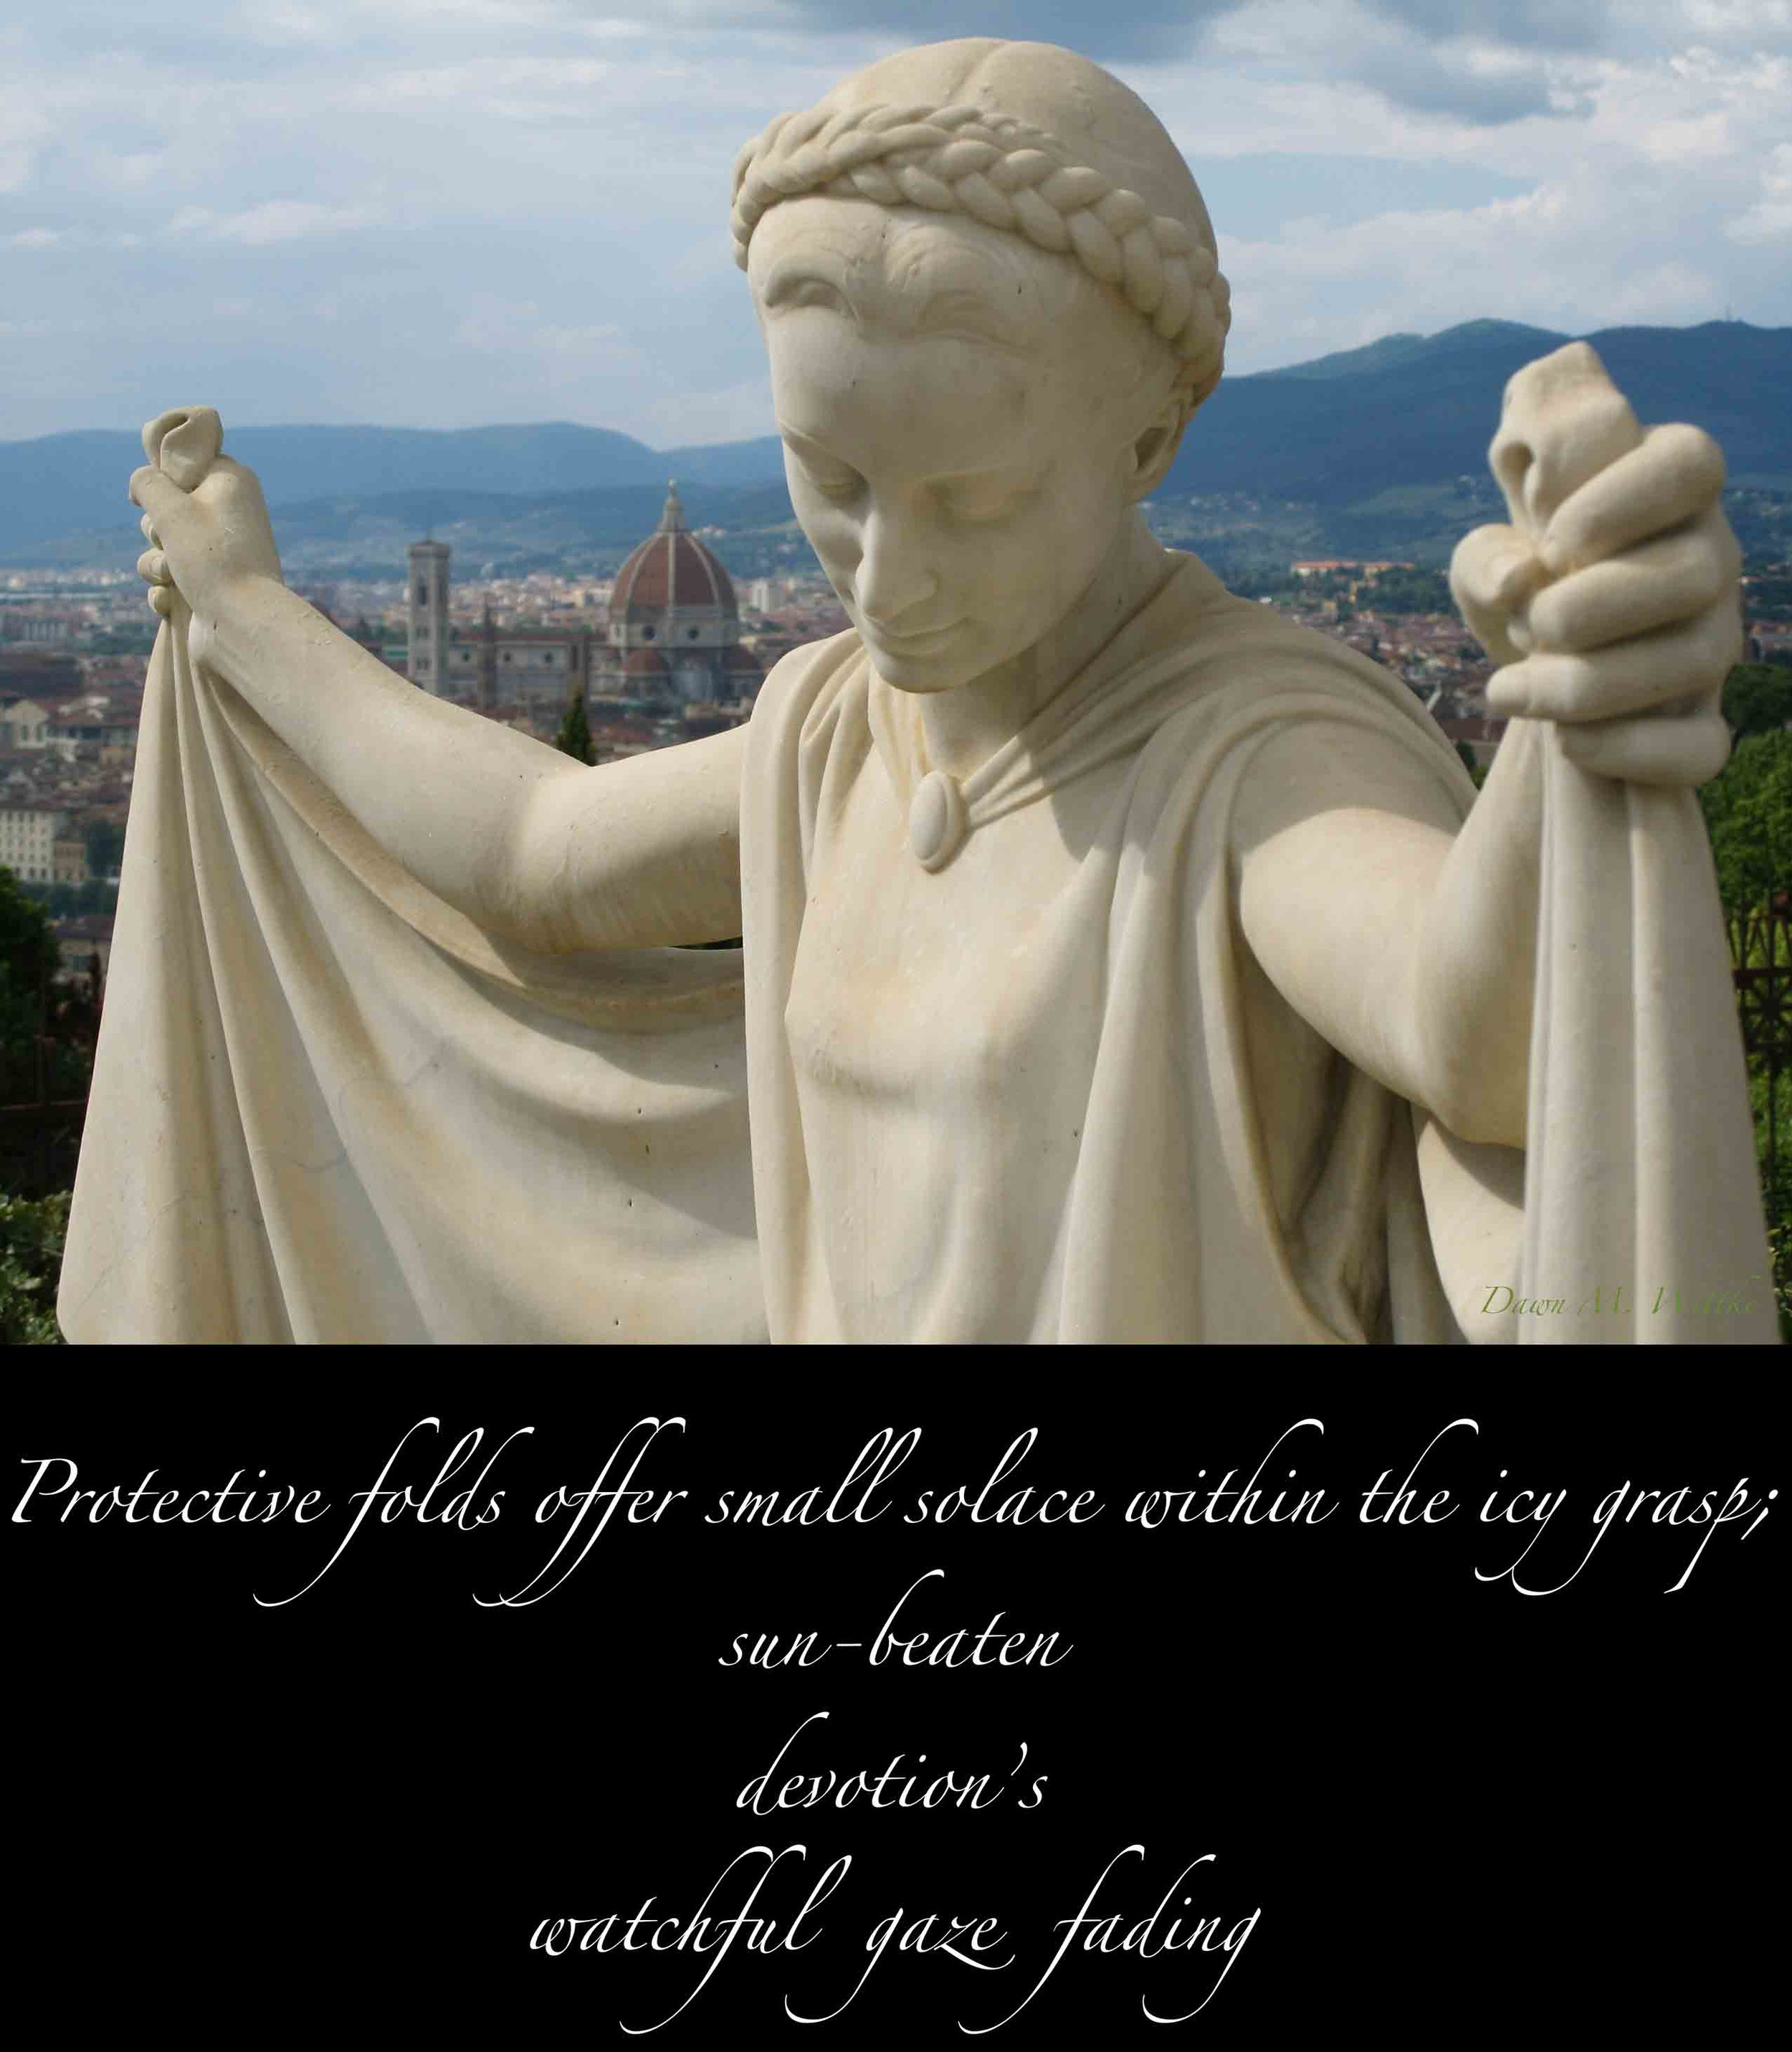 .  .    From    —Perceived Reflections—     by    Dawn M. Wittke    An outsider's perspective on the spirit of Firenze (2013)      .      .      .      .        .        .          .        .        .          .        .                              .